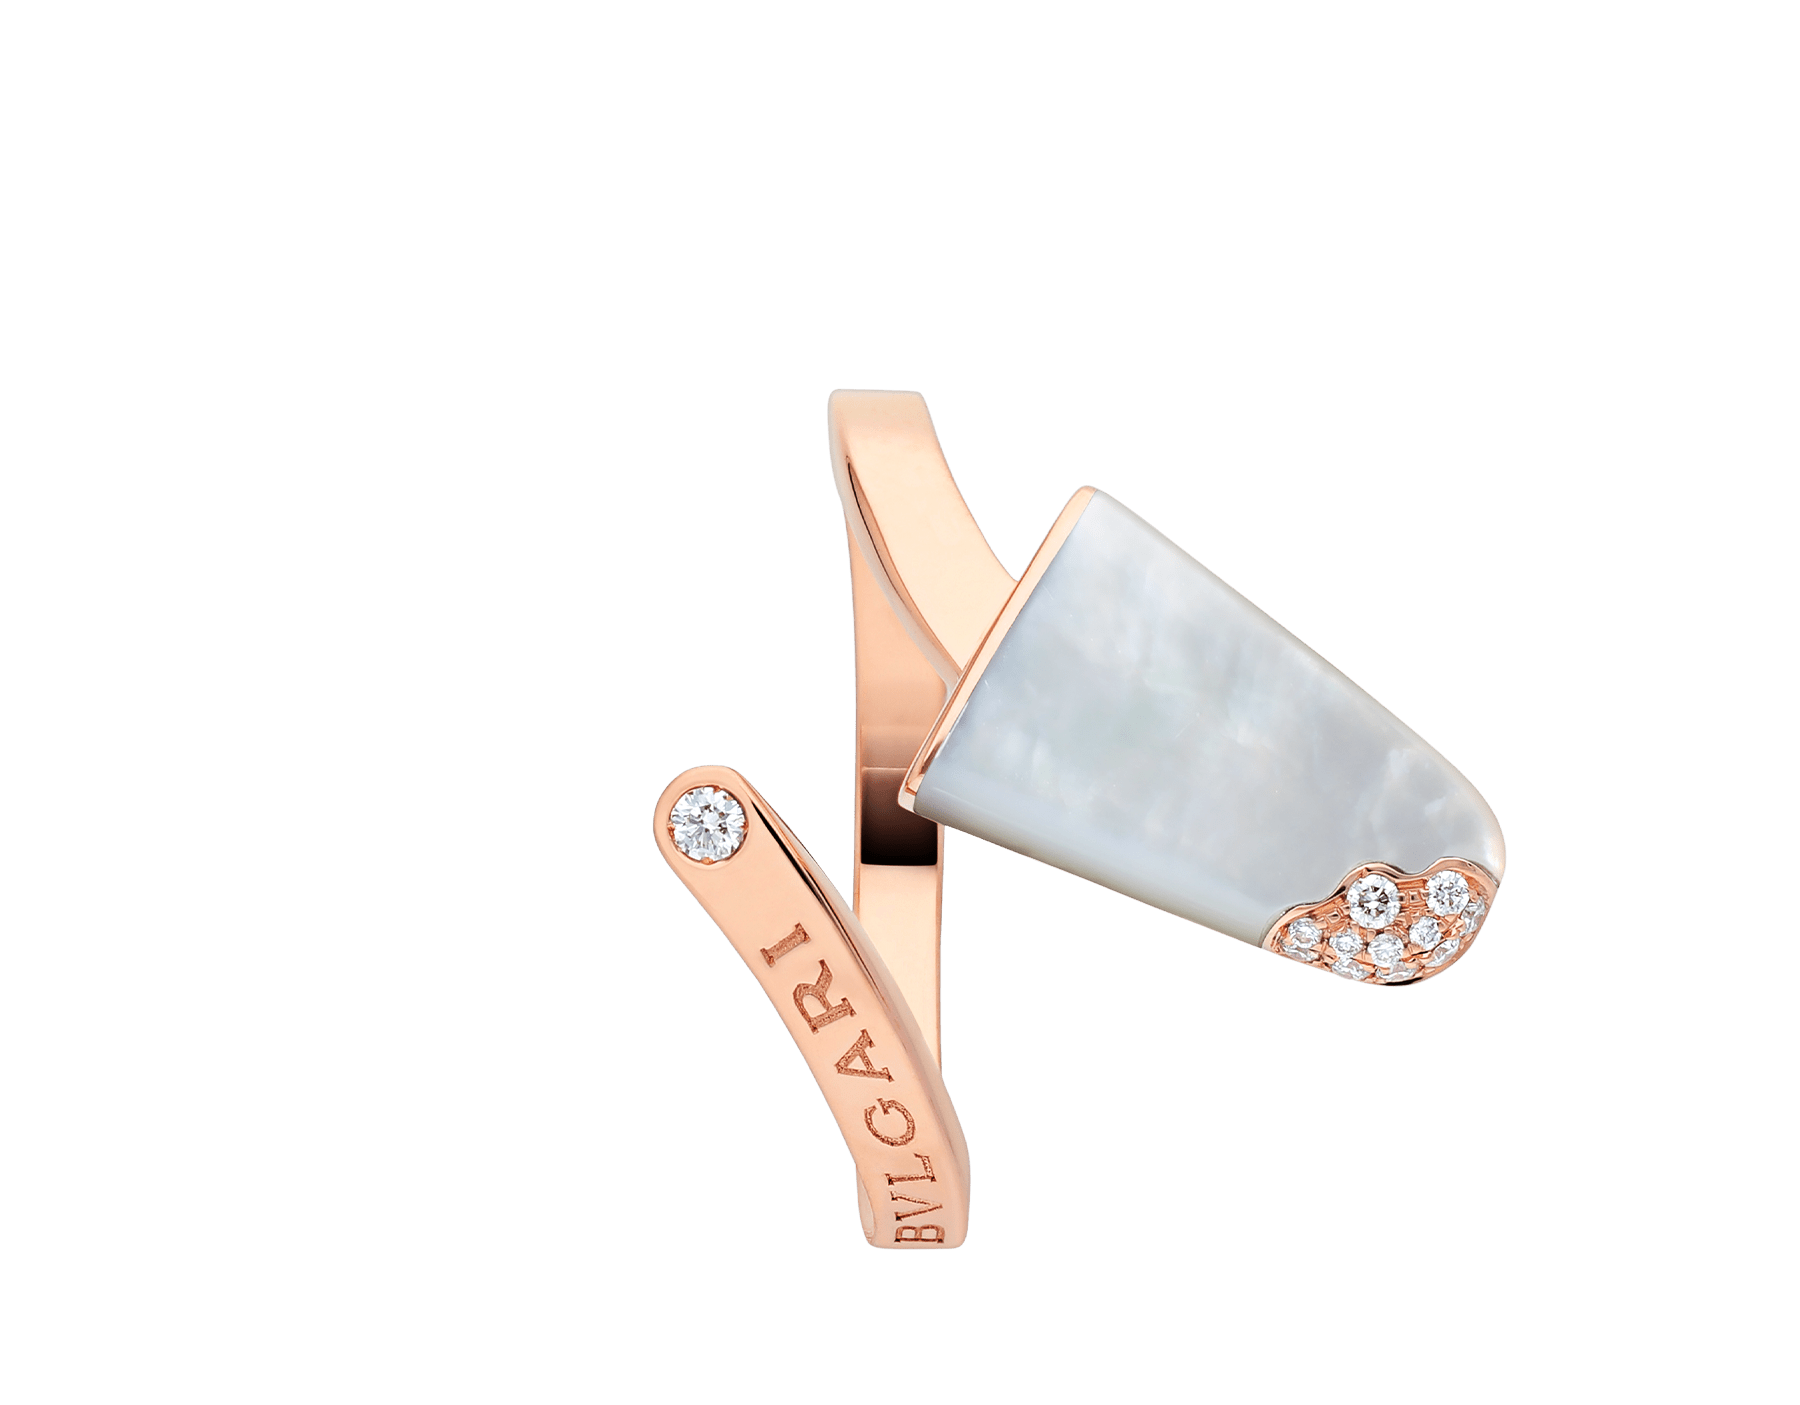 BVLGARI BVLGARI Gelati 18 kt rose gold ring set with mother-of-pearl and pavé diamonds AN858014 image 3